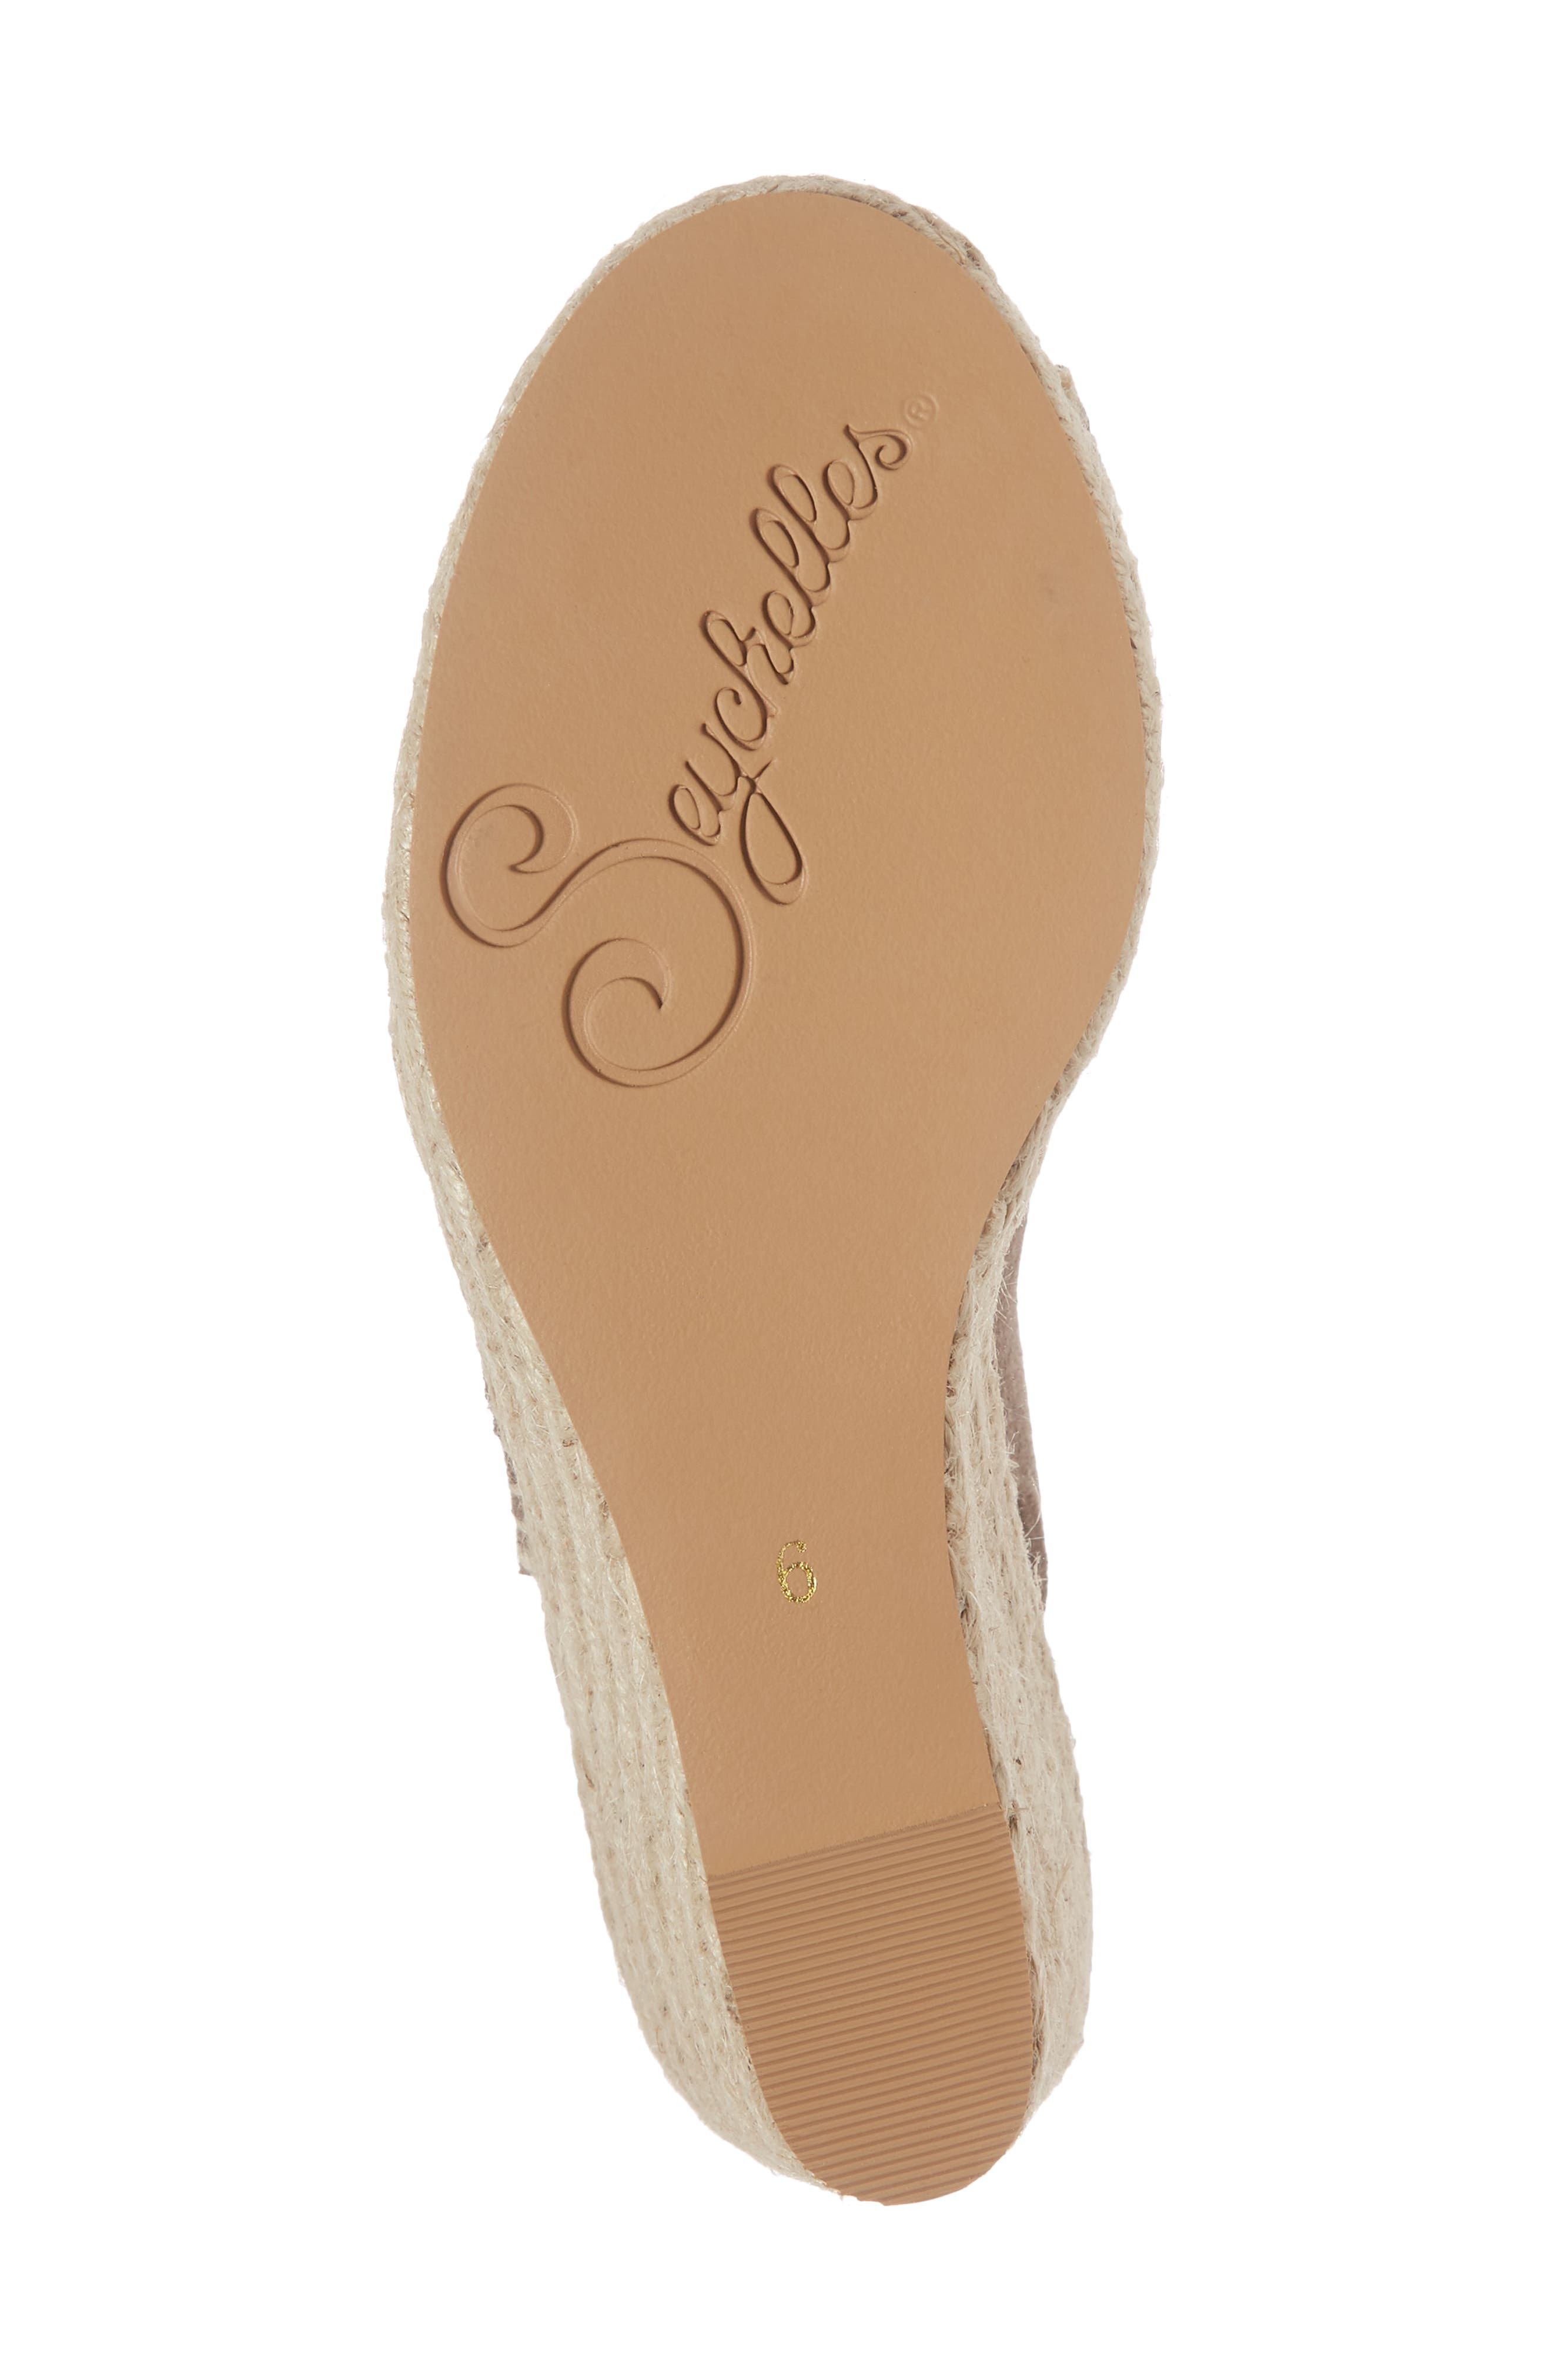 Interrelated Espadrille Wedge Sandal,                             Alternate thumbnail 6, color,                             Taupe Suede